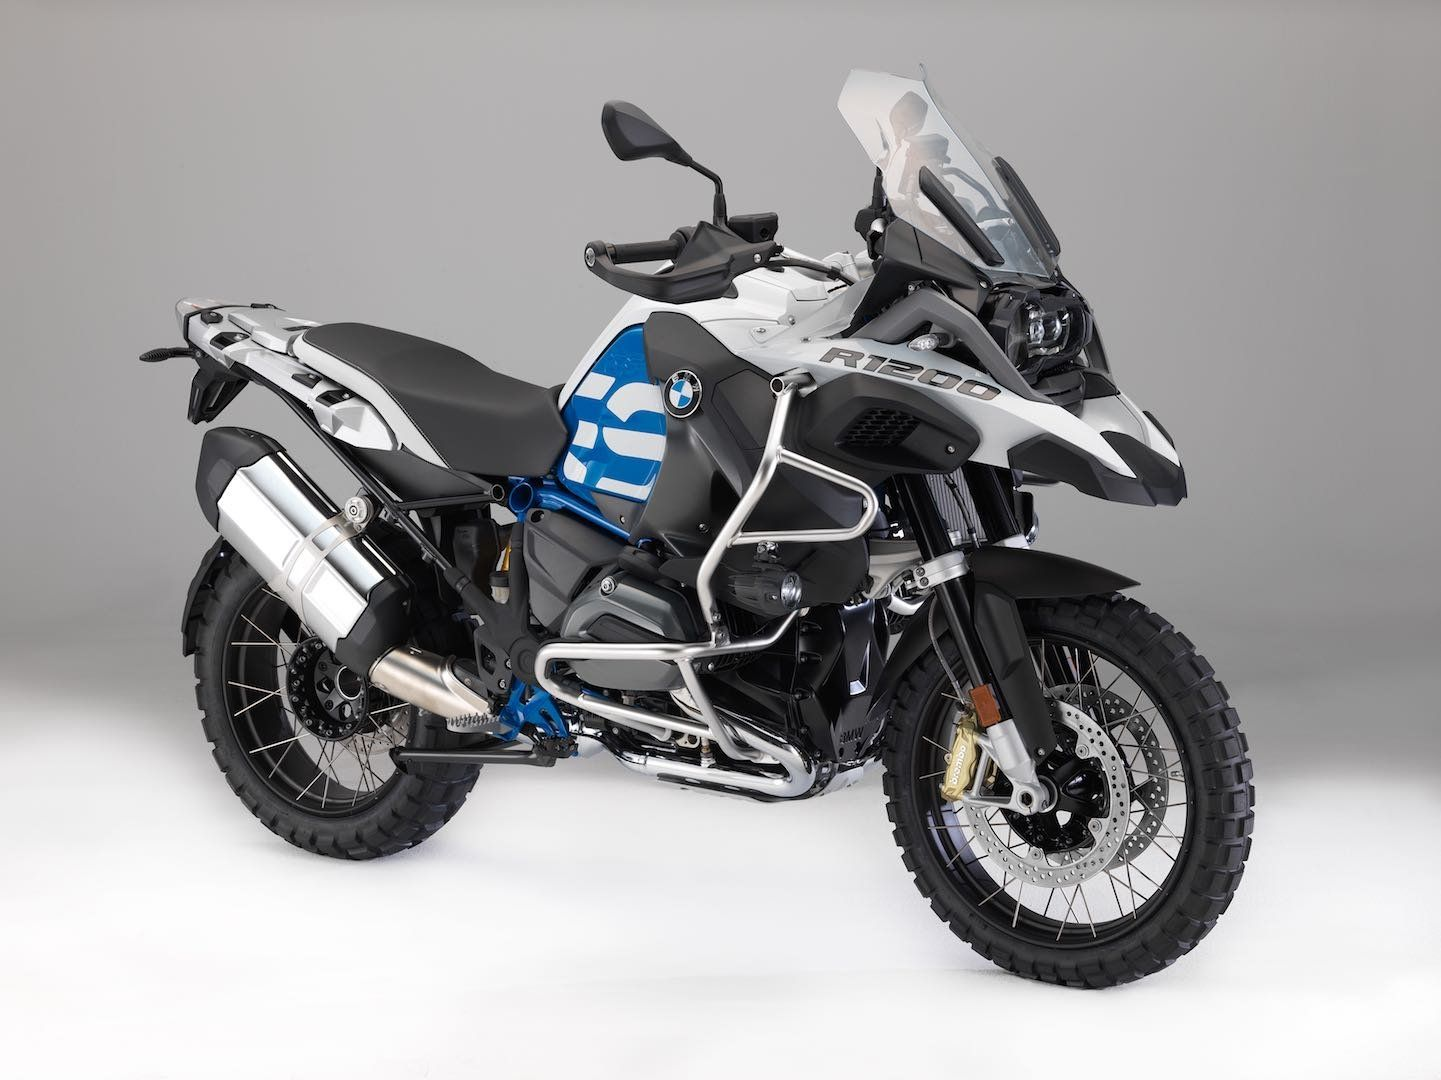 2018 Bmw Gs 1200 Model From 2018 Bmw R 1200 Gs Adventure New